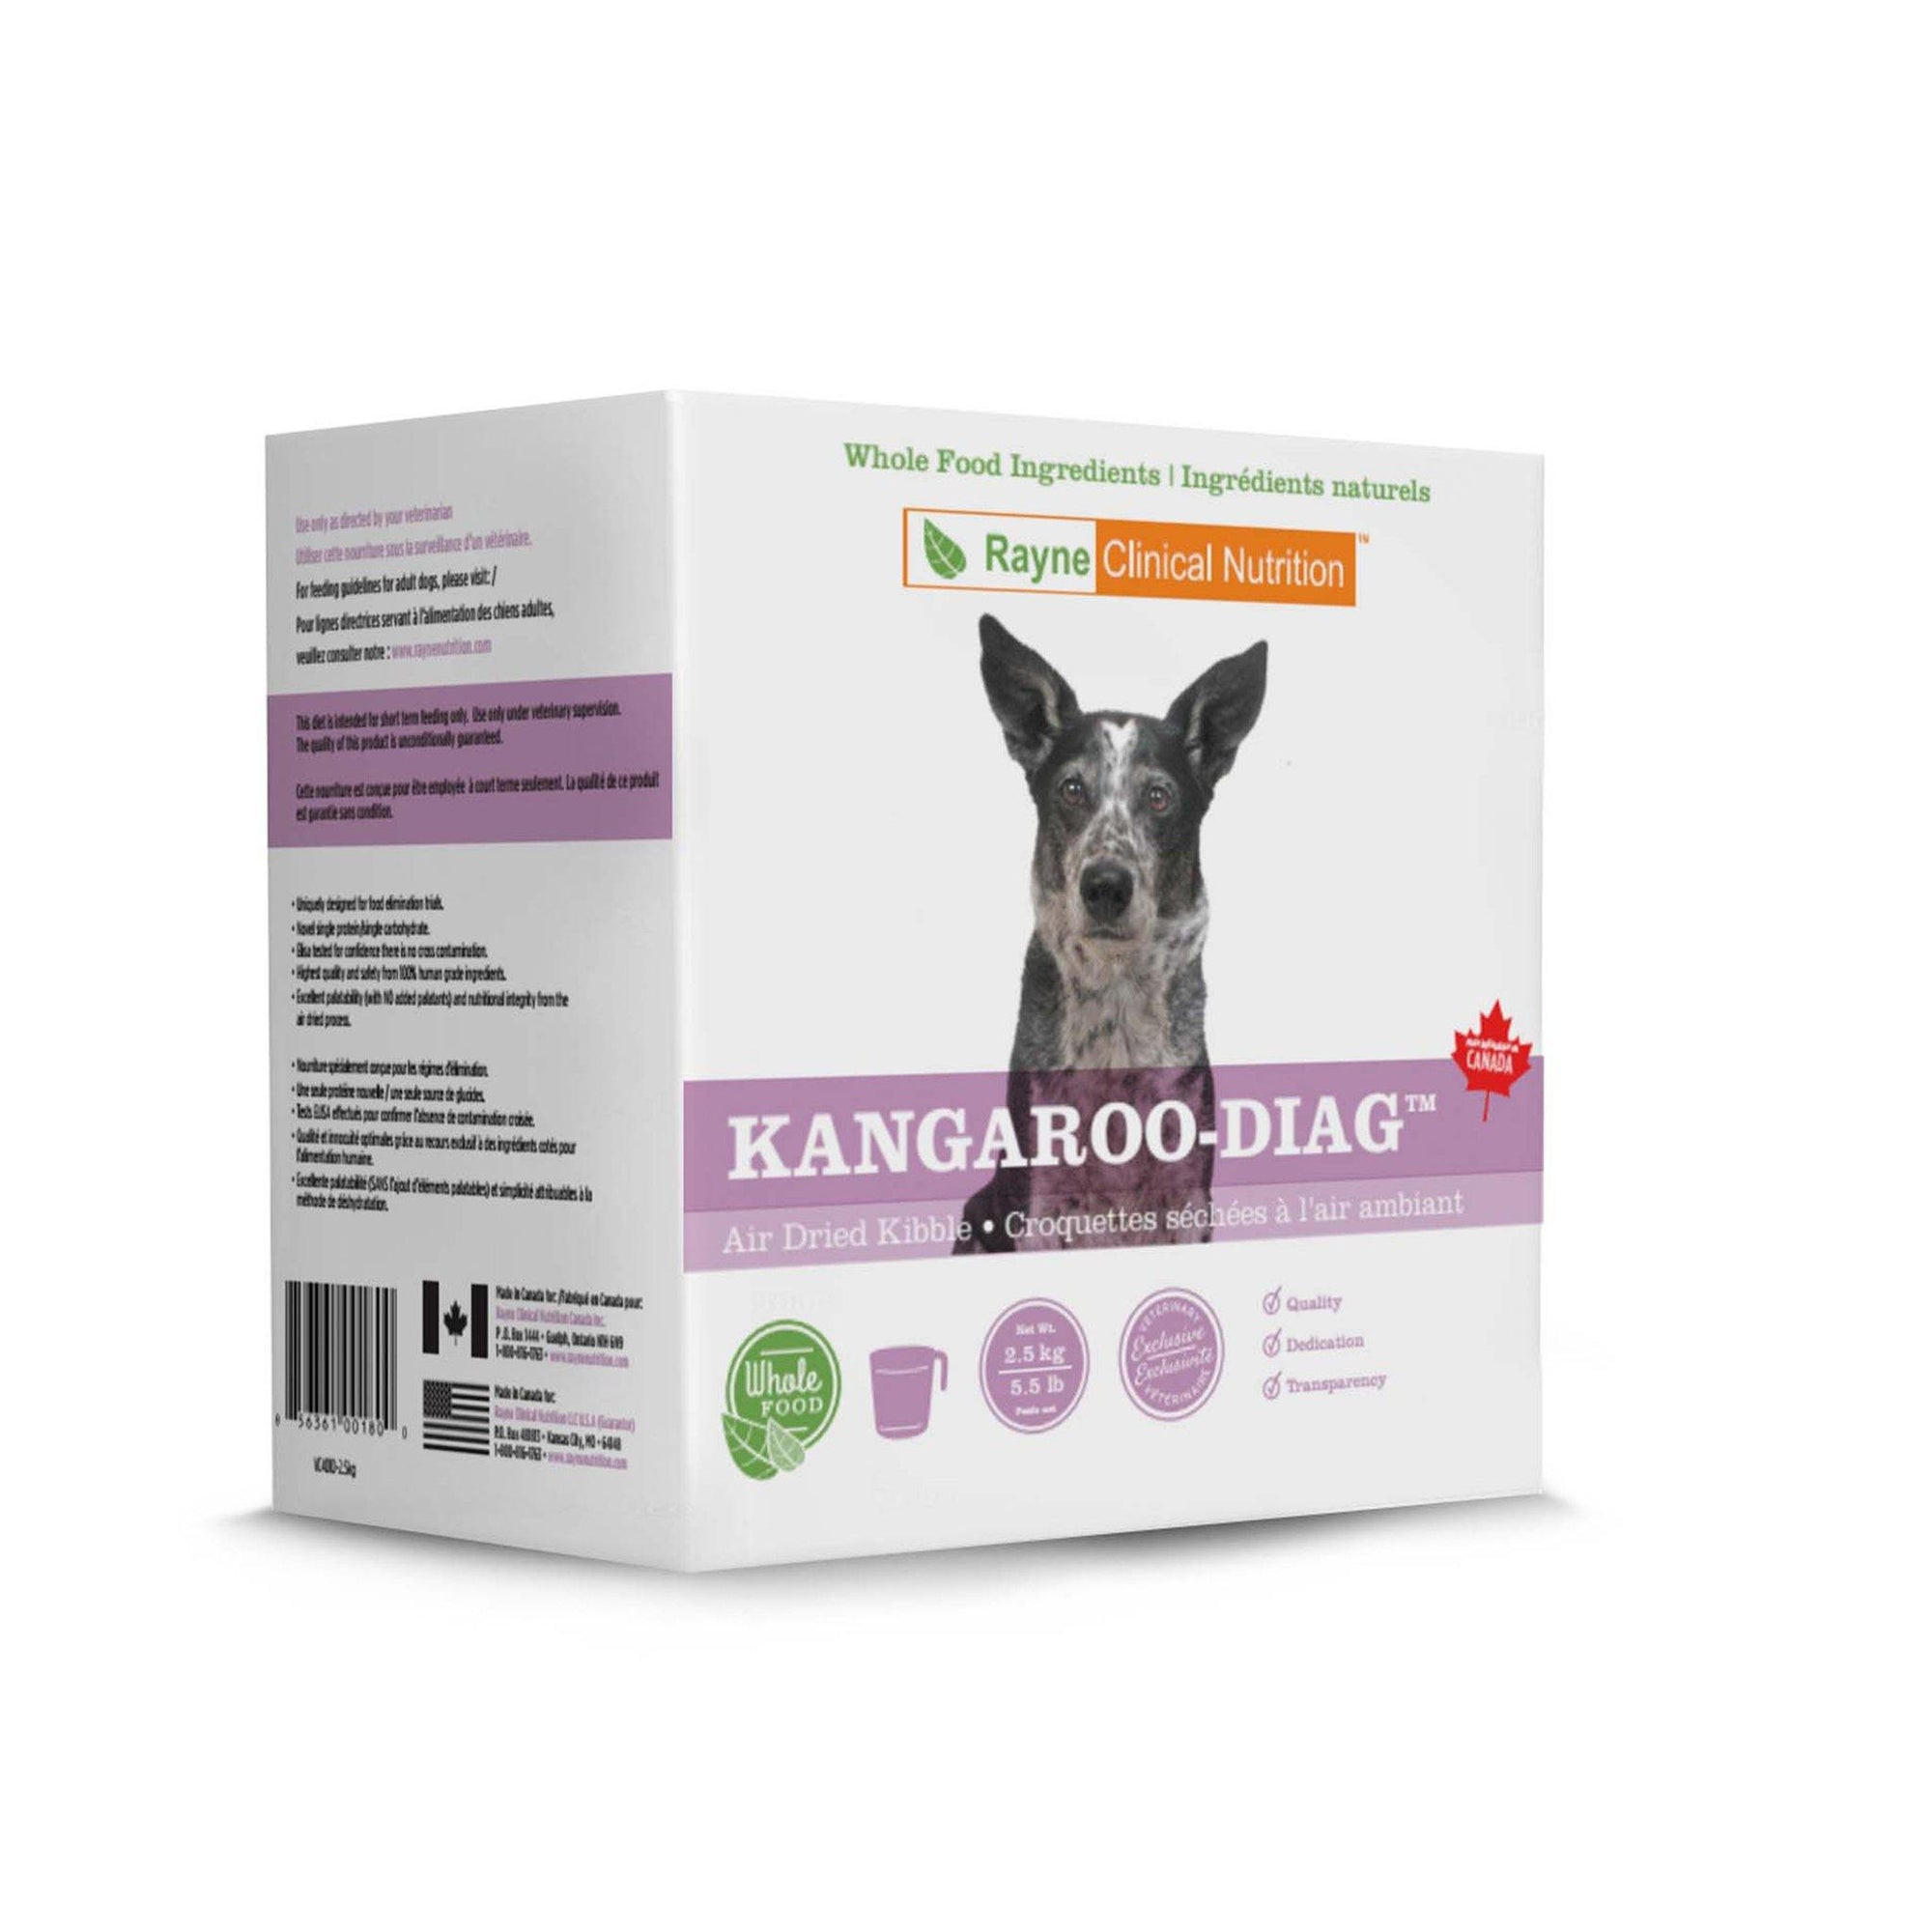 Kangaroo-DIAG Canine Air-Dried